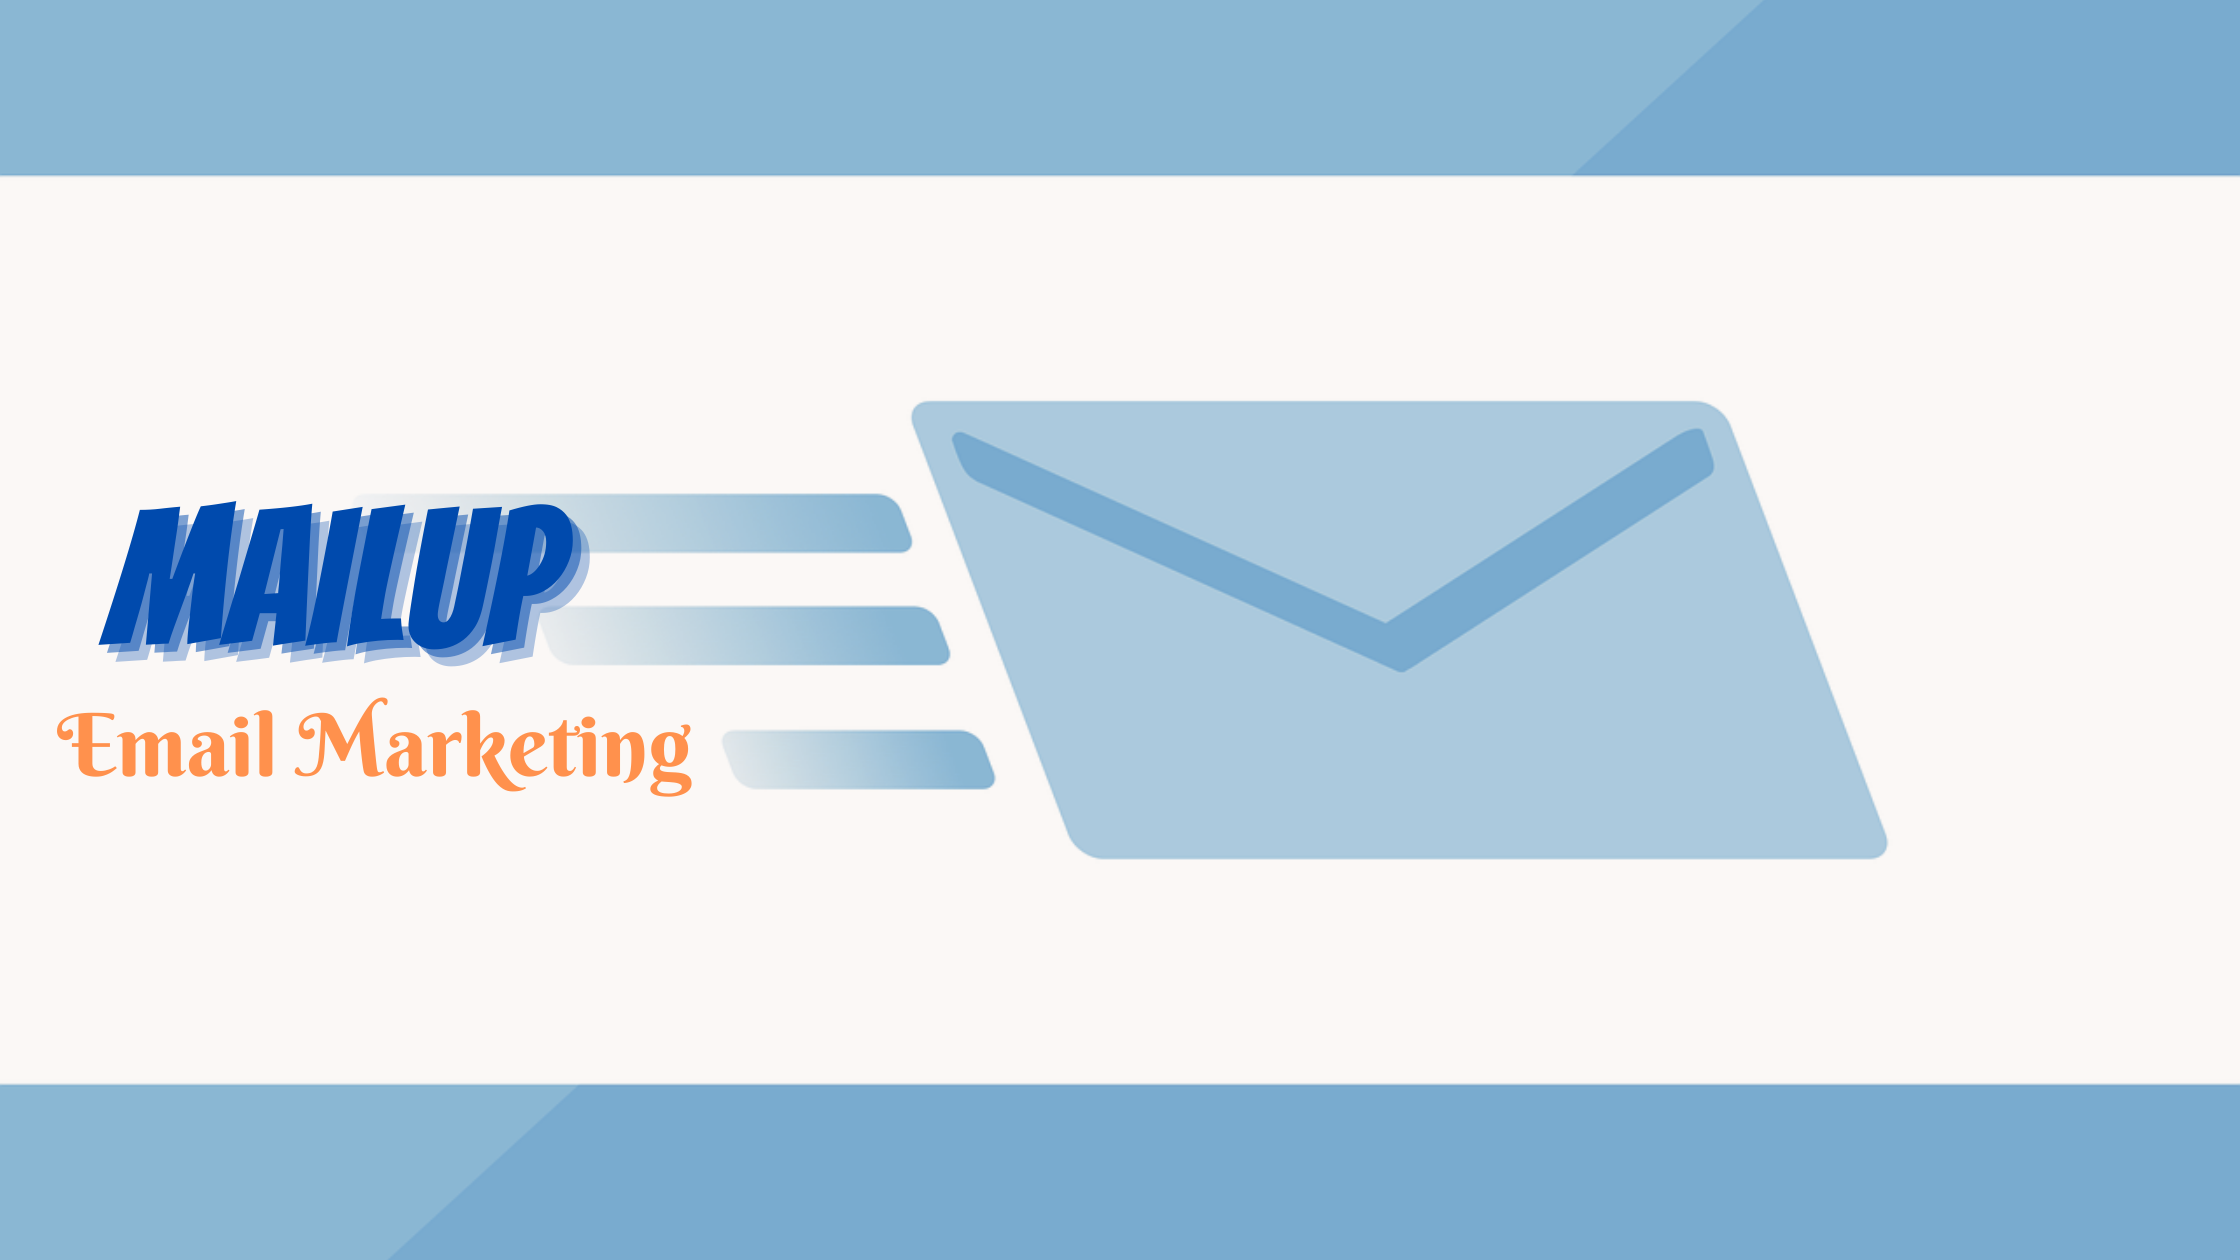 Mailup Email Marketing Review